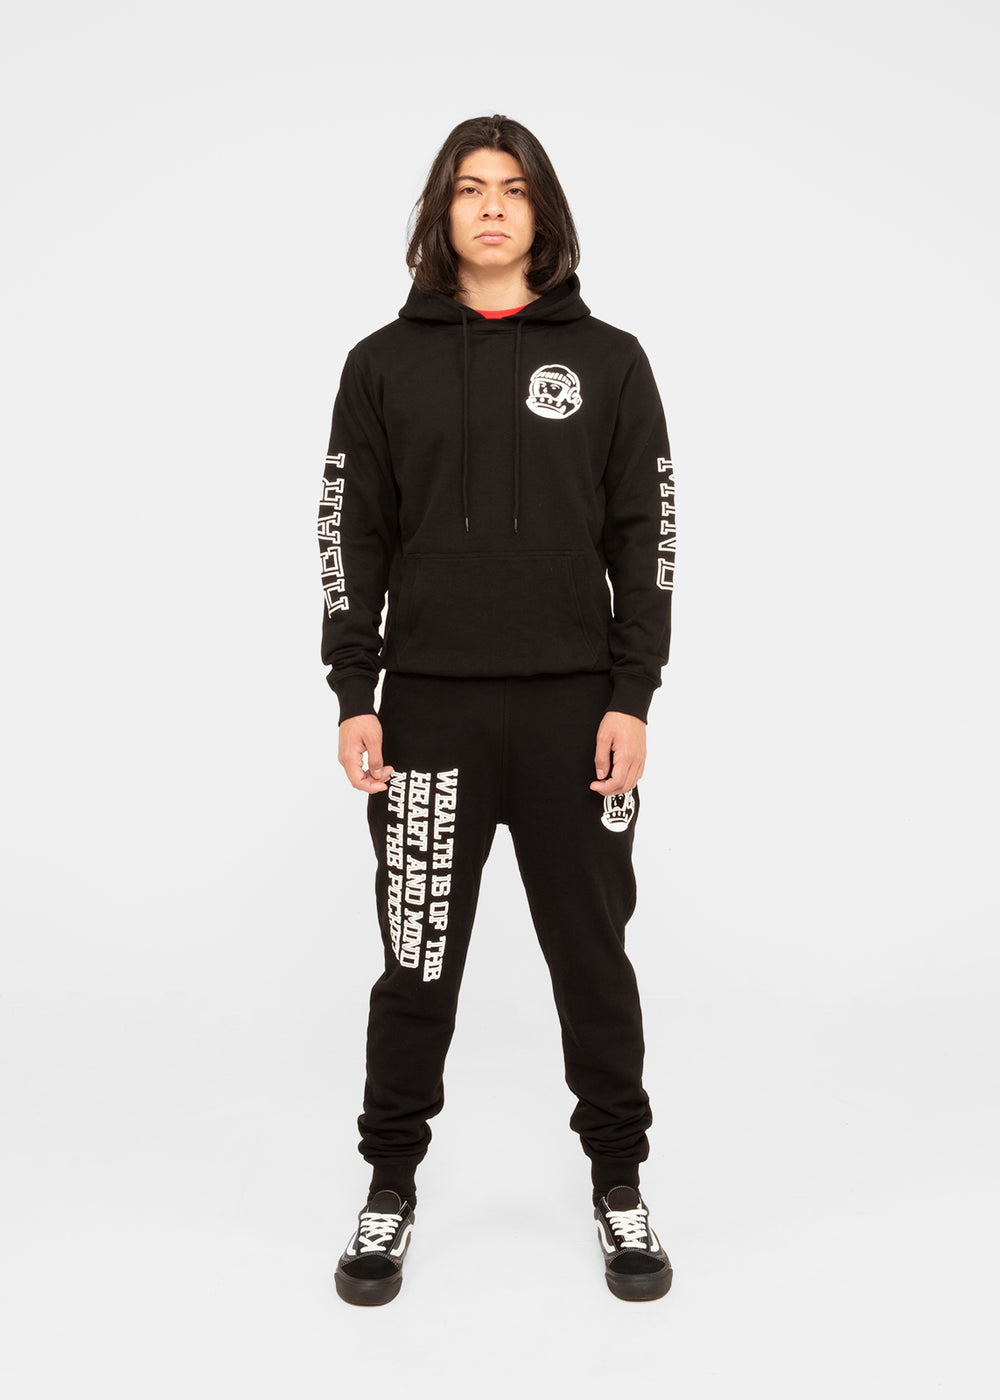 billionaire-boys-club-wealth-jogger-891-7102-blk-blk-4